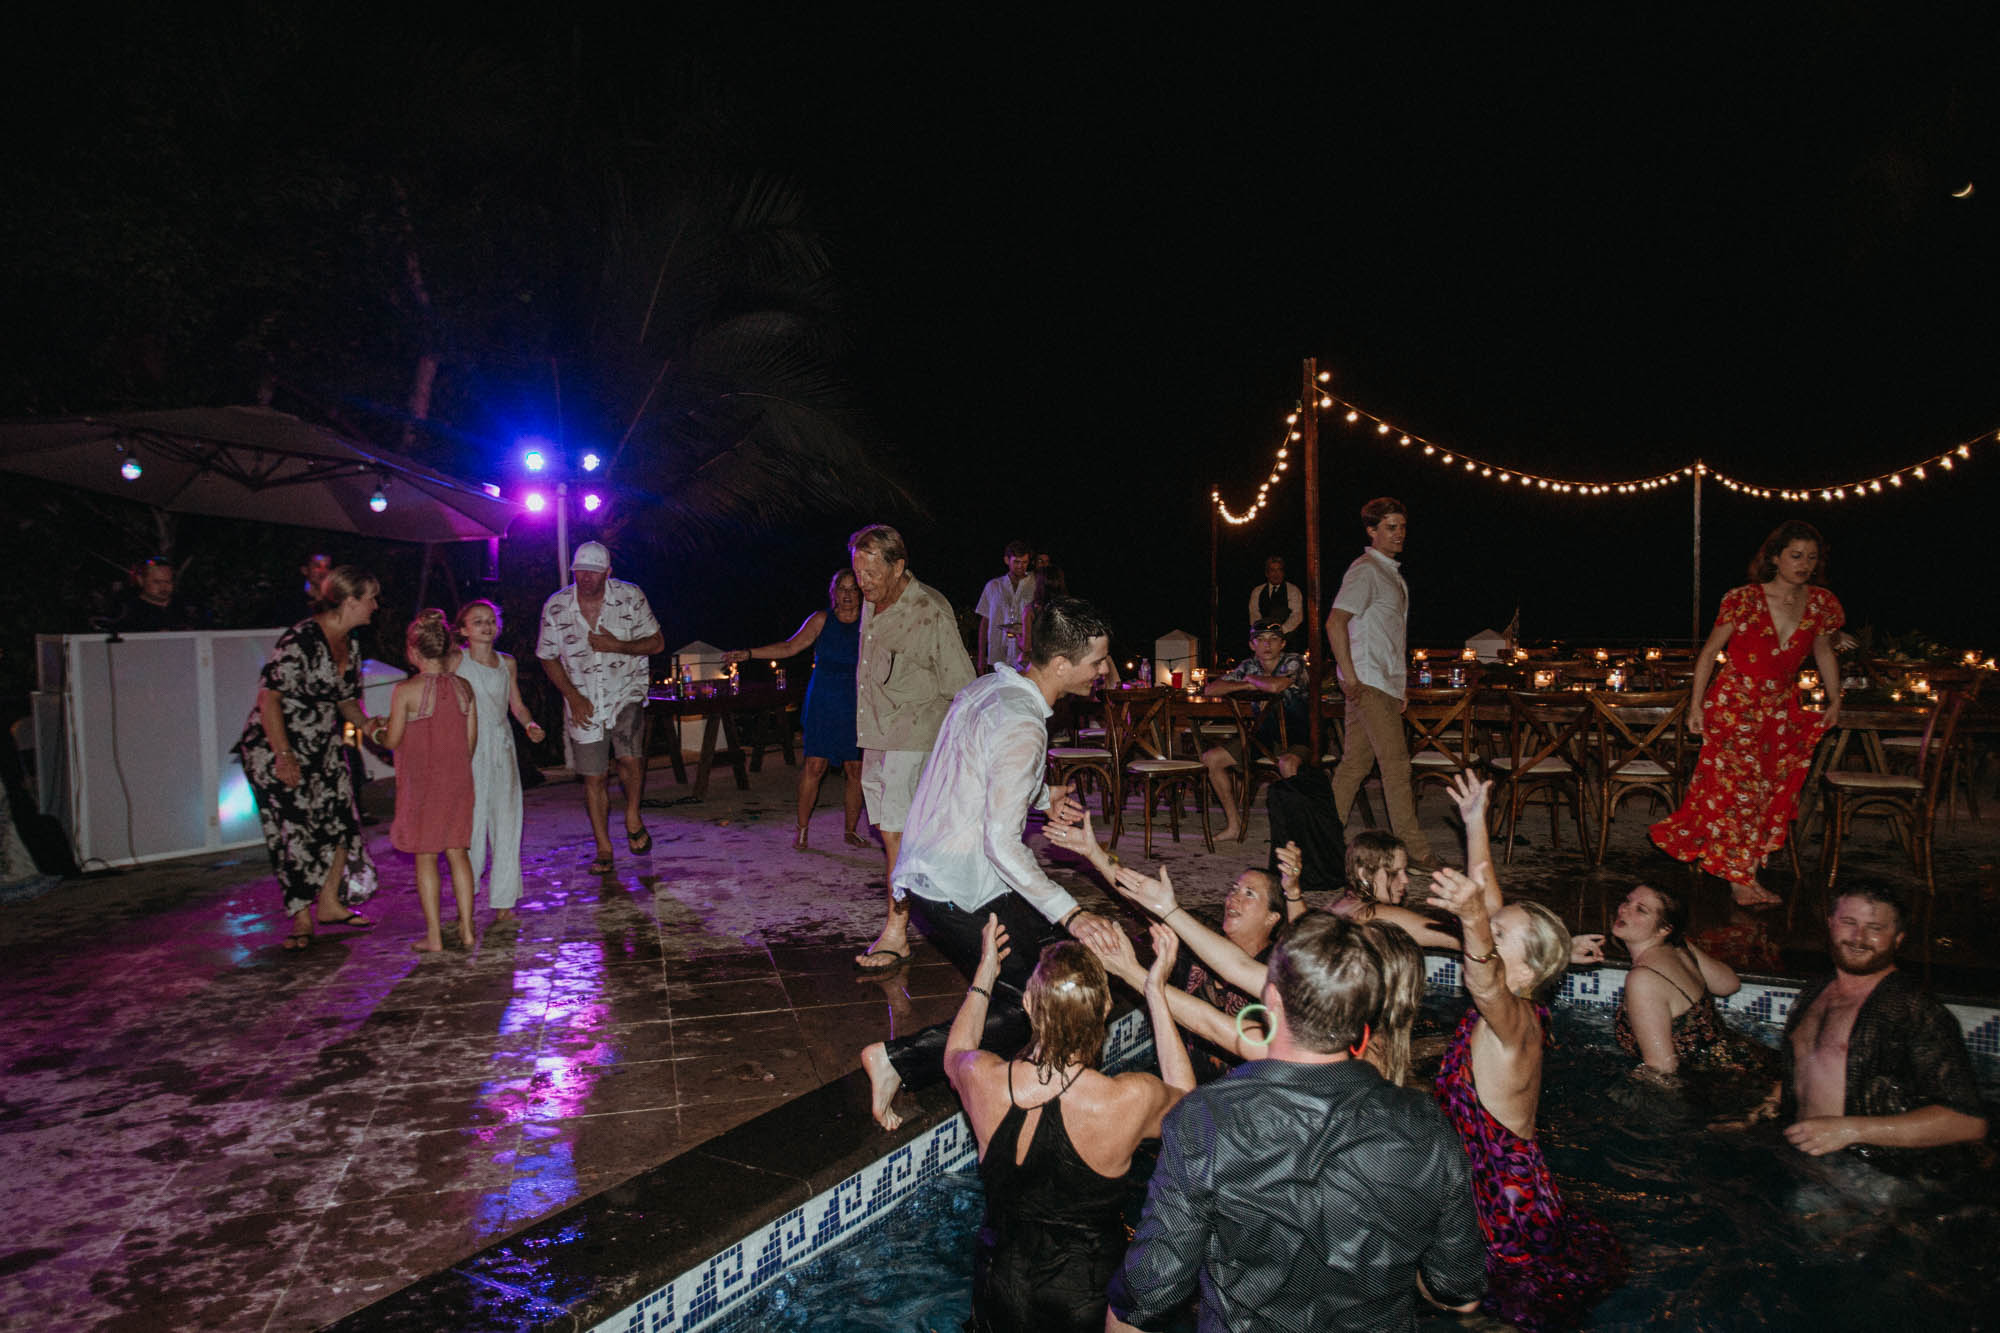 c_m_mexicowedding_destinationphotographer-104.jpg